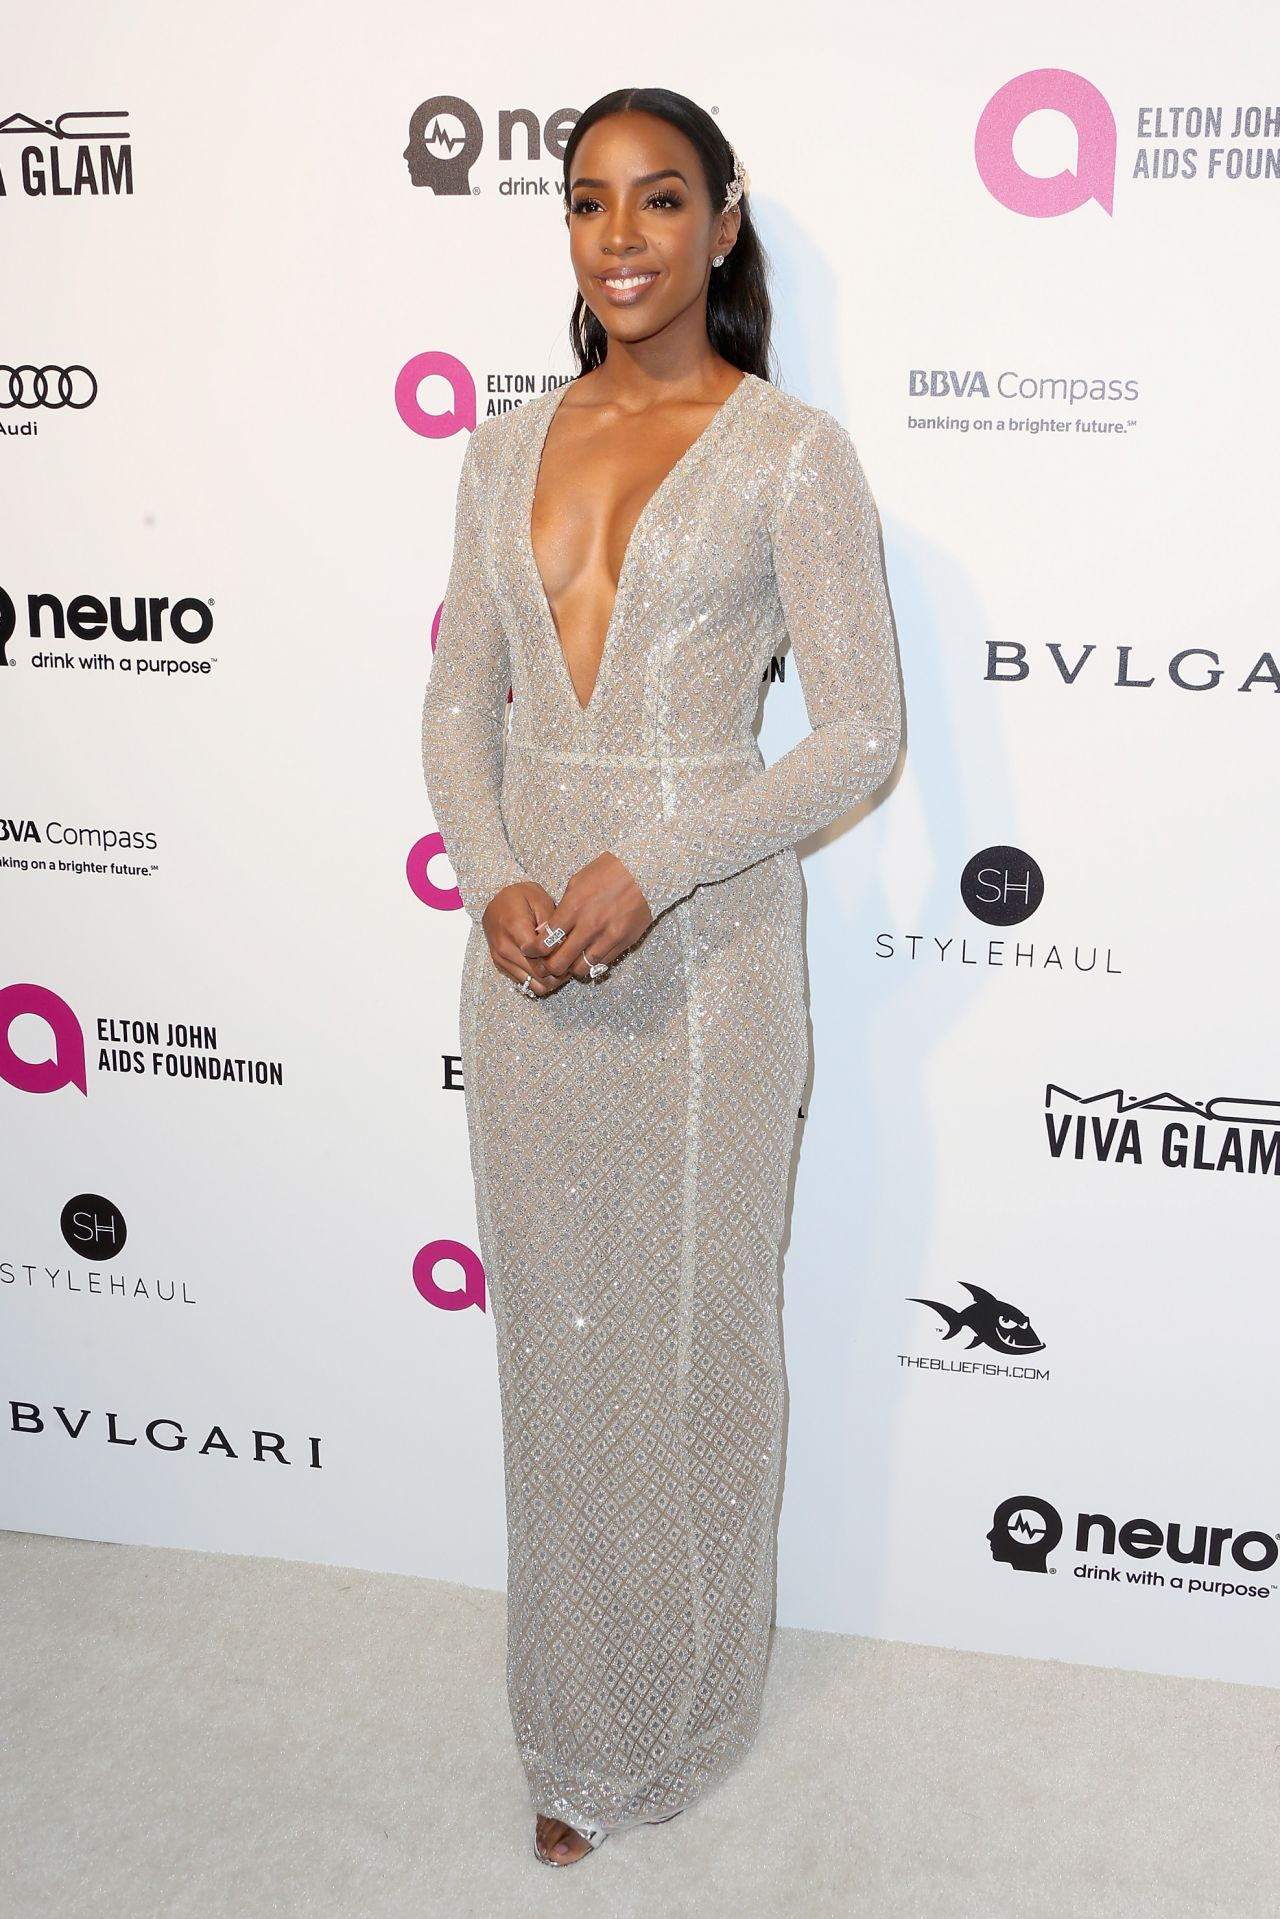 kelly-rowland-2016-elton-john-aids-foundation-s-oscar-viewing-party-in-west-hollywood-ca-1